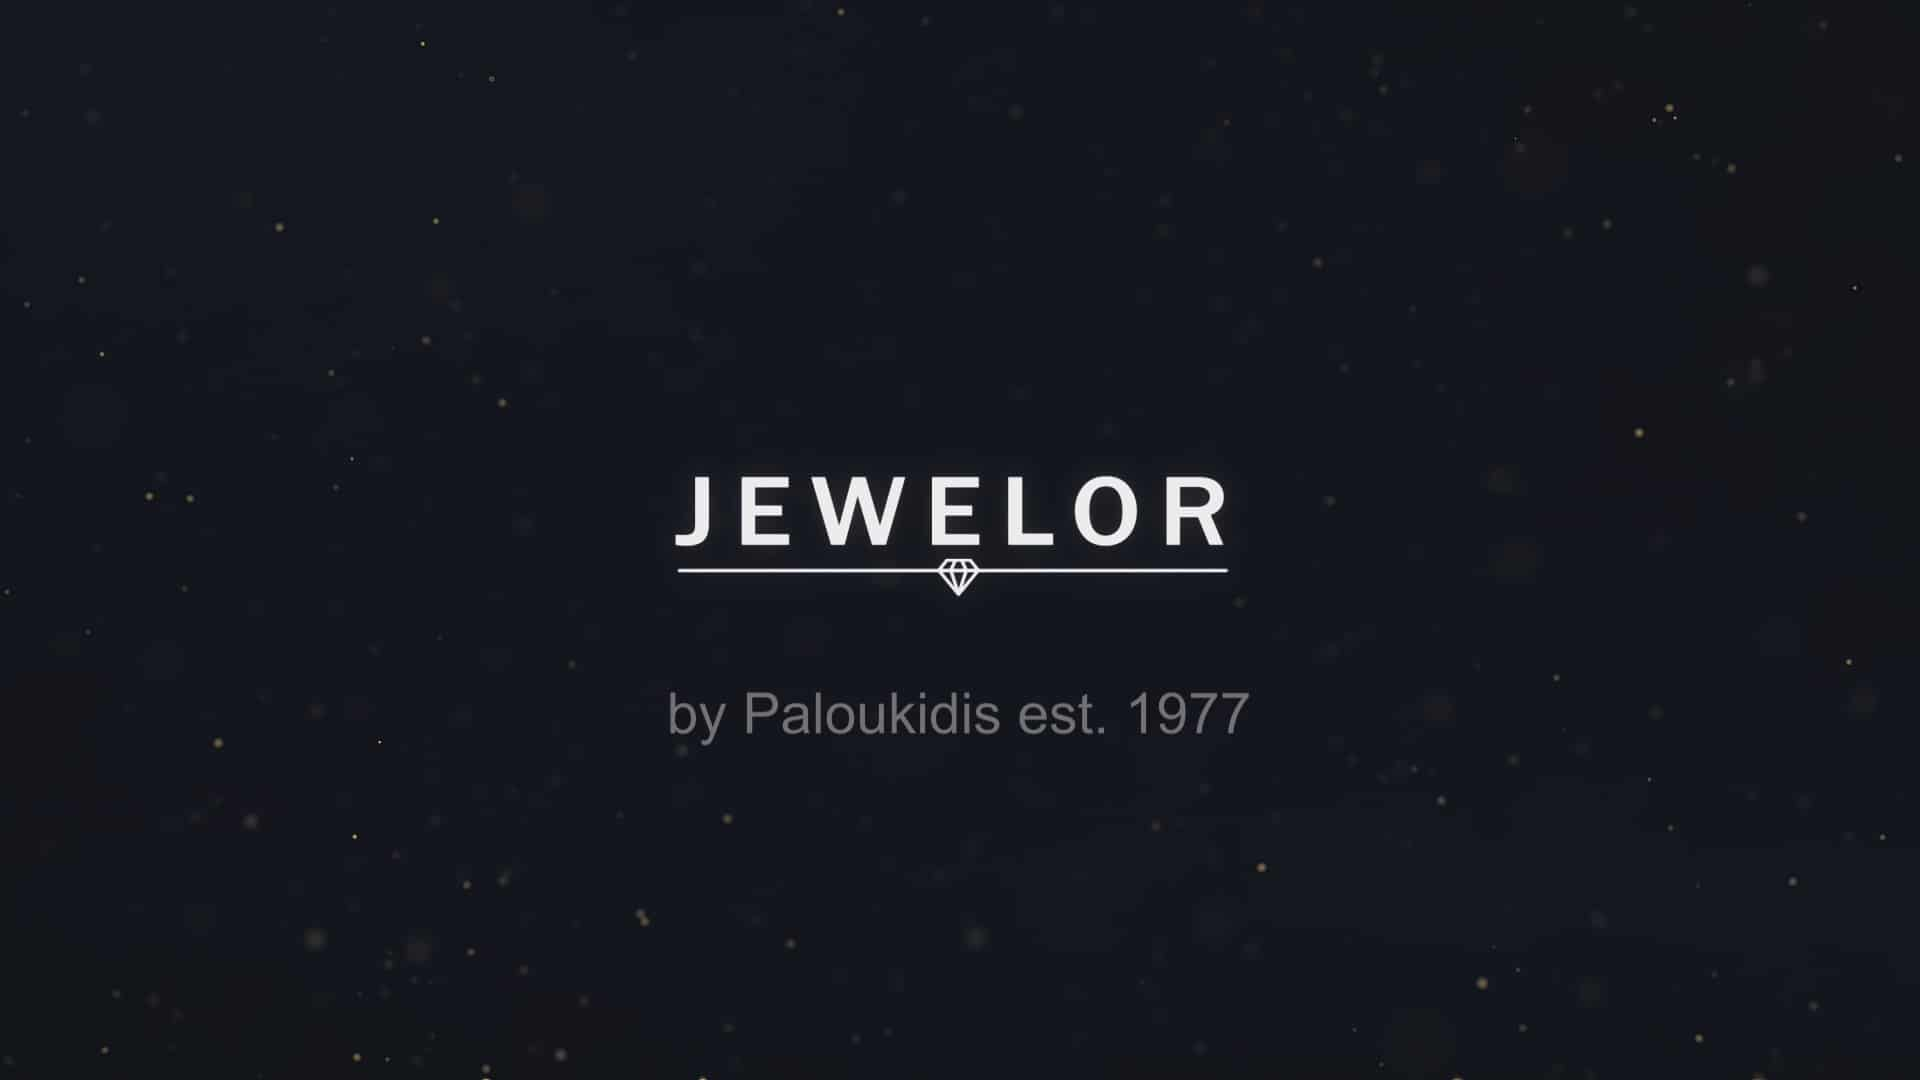 Jewelor Front Page Frame